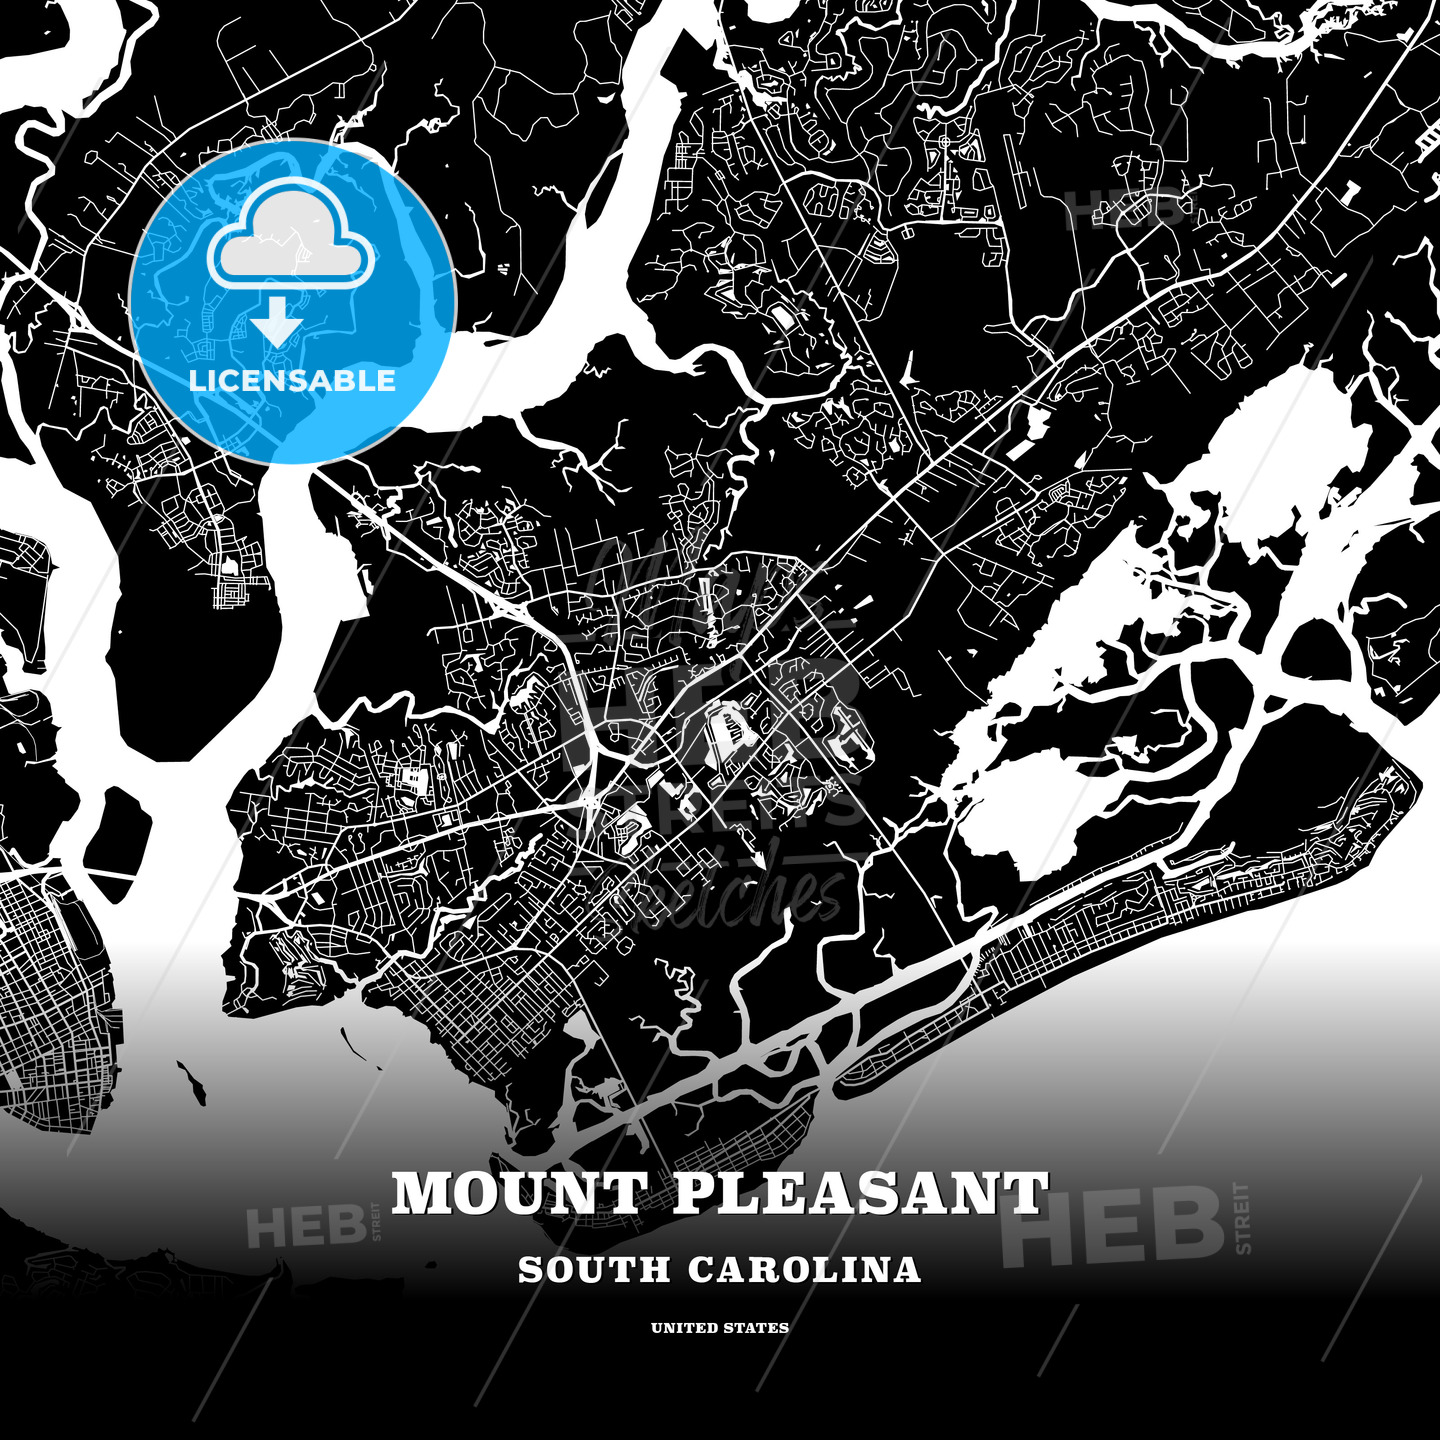 Black map poster template of Mount Pleasant, South Carolina, USA